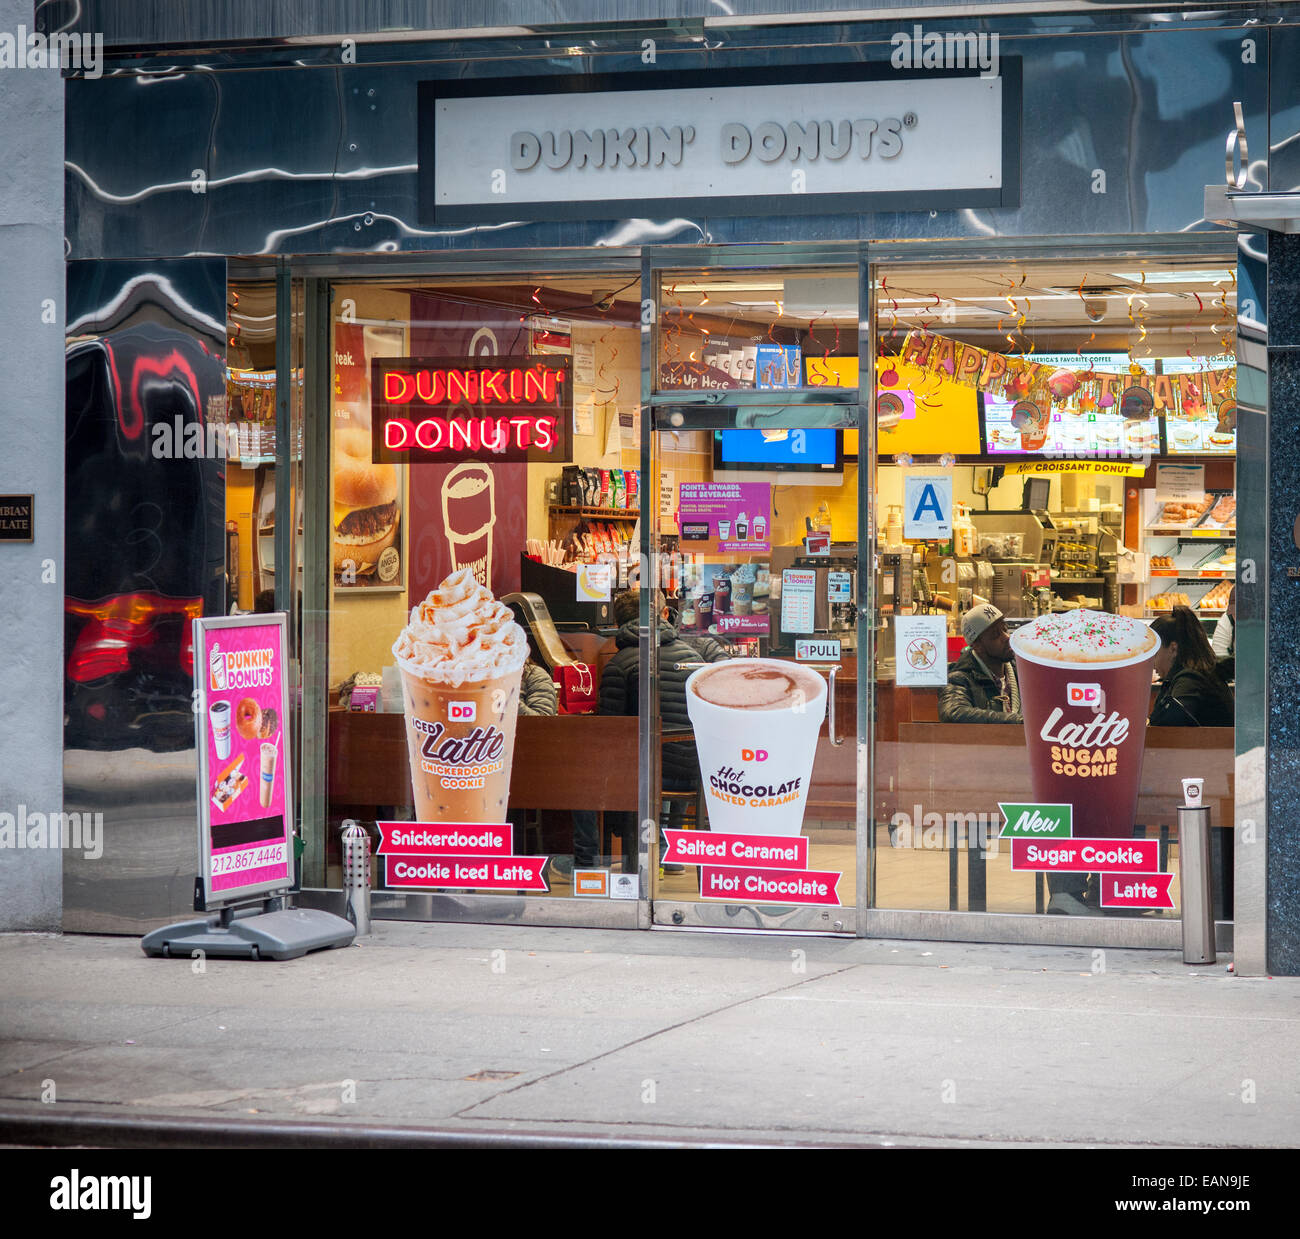 Donuts New York Stock Photos  Donuts New York Stock Images Alamy - Dunkin donuts location map usa